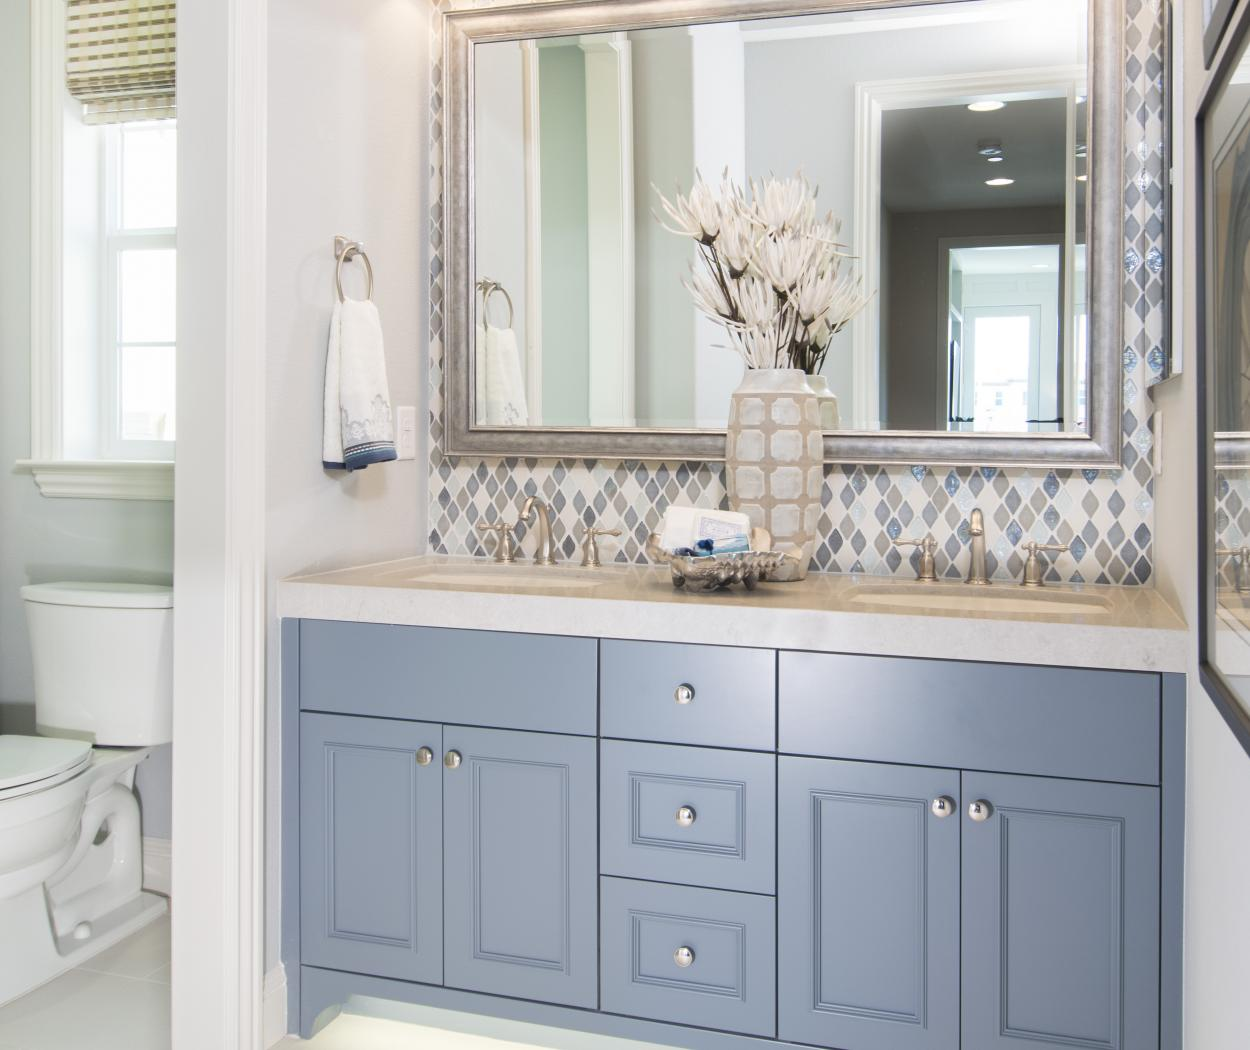 Light Blue Master Bathroom Cabinets with Double Sinks and Silver Knobs